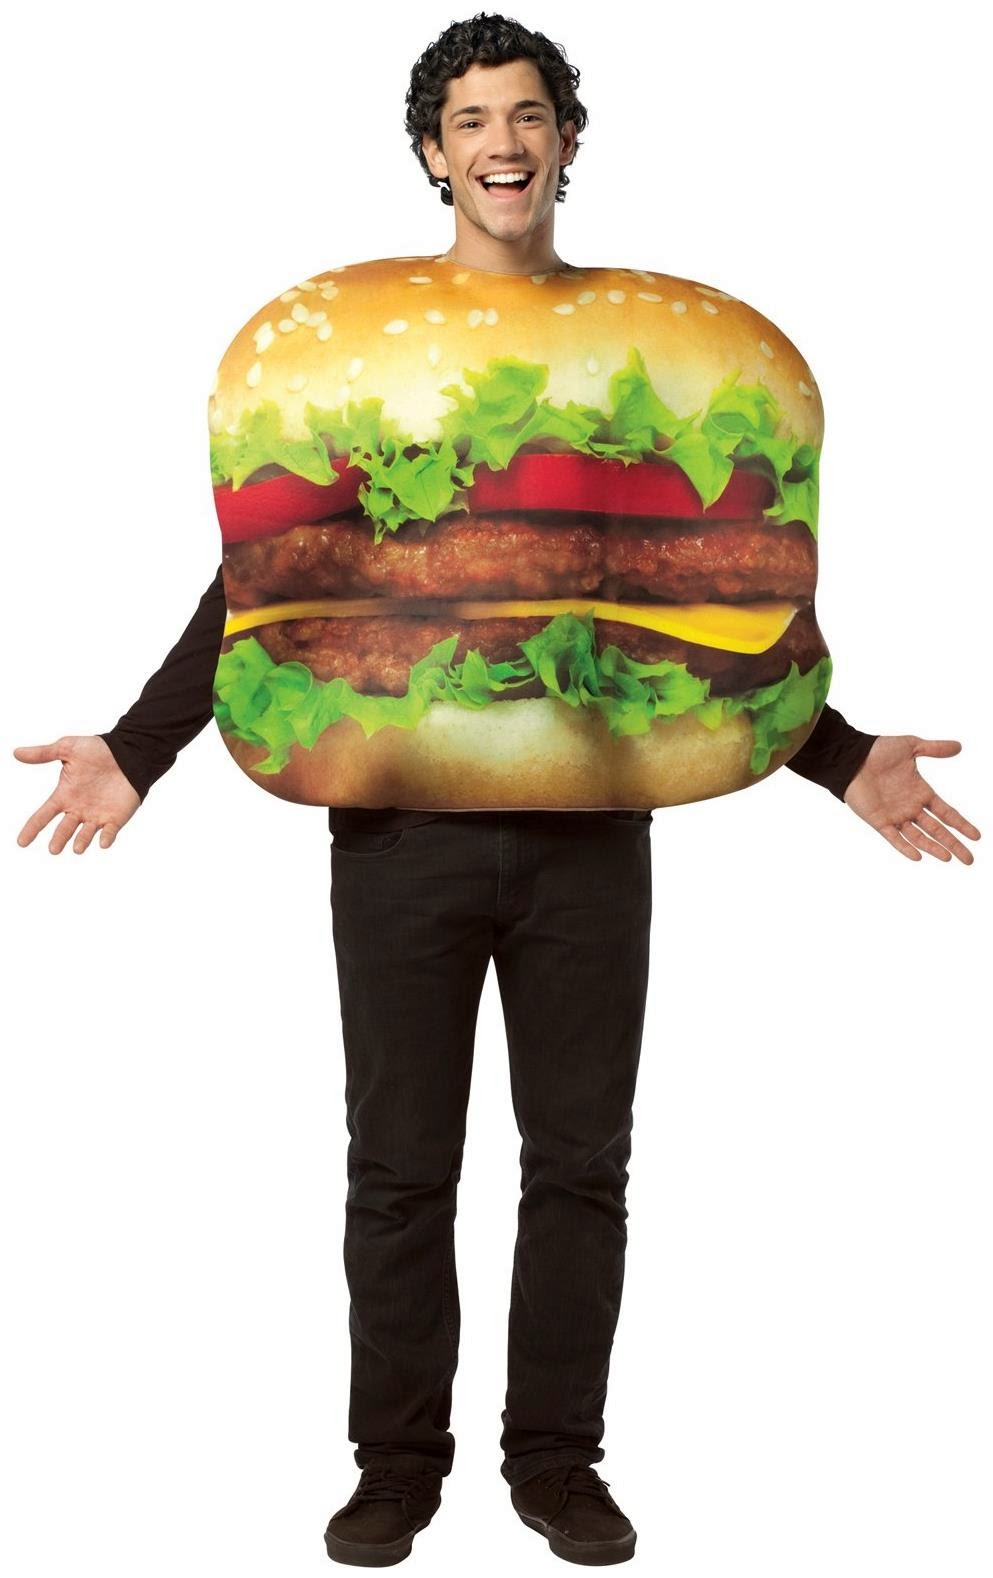 Cheese Burger Costume